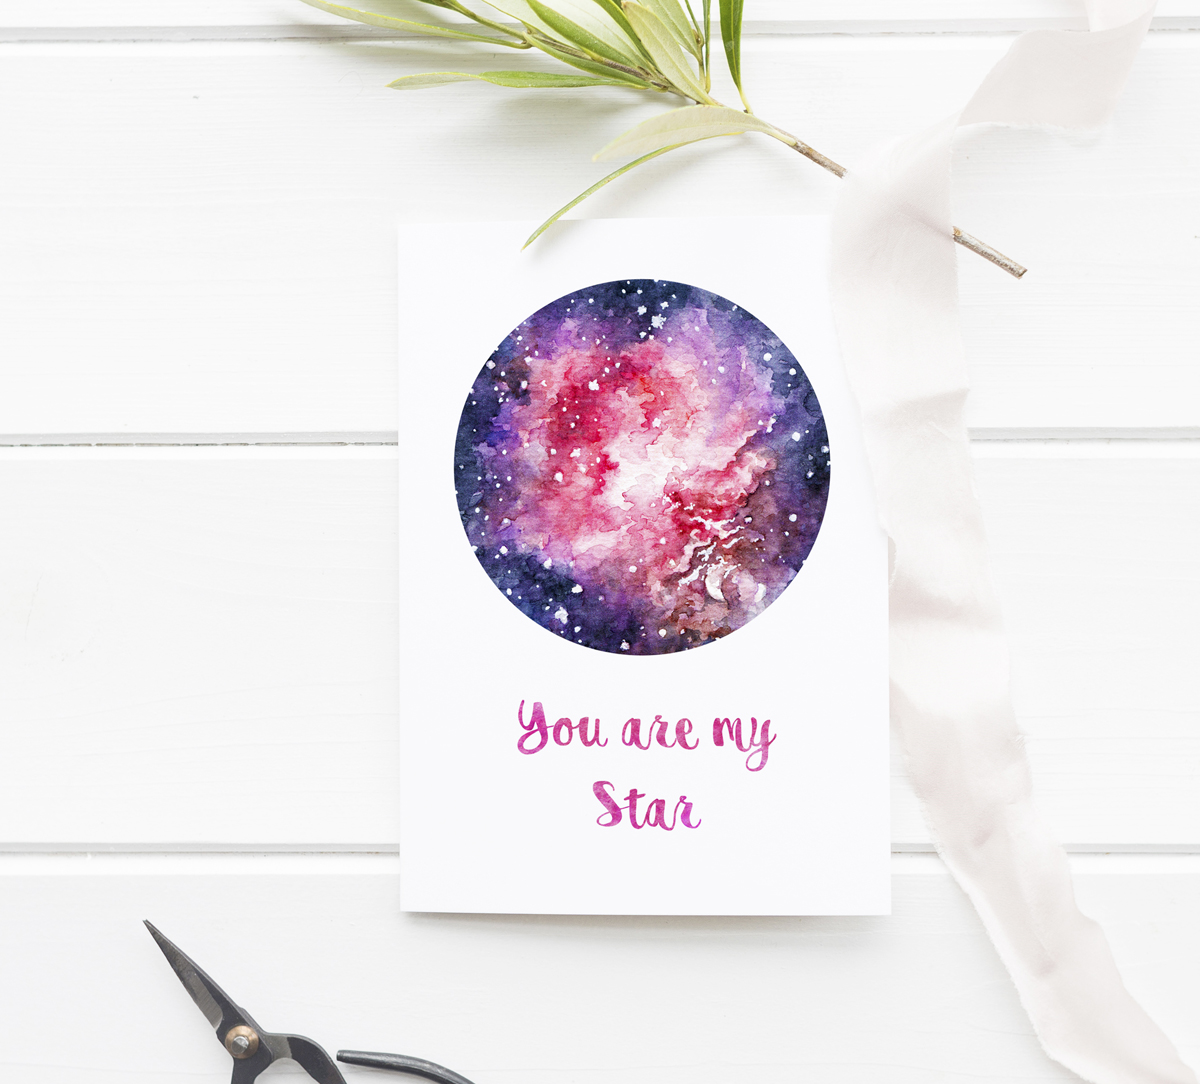 """* A romantic PRINTABLE card inspired by space & stars, with hand-drawn watercolour galaxy art patterns on the front and back.  With """"You are my Star"""" watercolour pattern calligraphy. Request a custom message or use the card as is. The digital download file can be printed at home - perfect for a last-minute DIY gift for Valentine's Day!  * A bonus blue night sky illustration decorates the back of the A5 card and the printable design comes with a wide margin and guidelines to make your printing, cutting, and folding easy!  * The calligraphy element can be personalized - request a customization and I'll add a personal message with the same watercolor pattern font."""